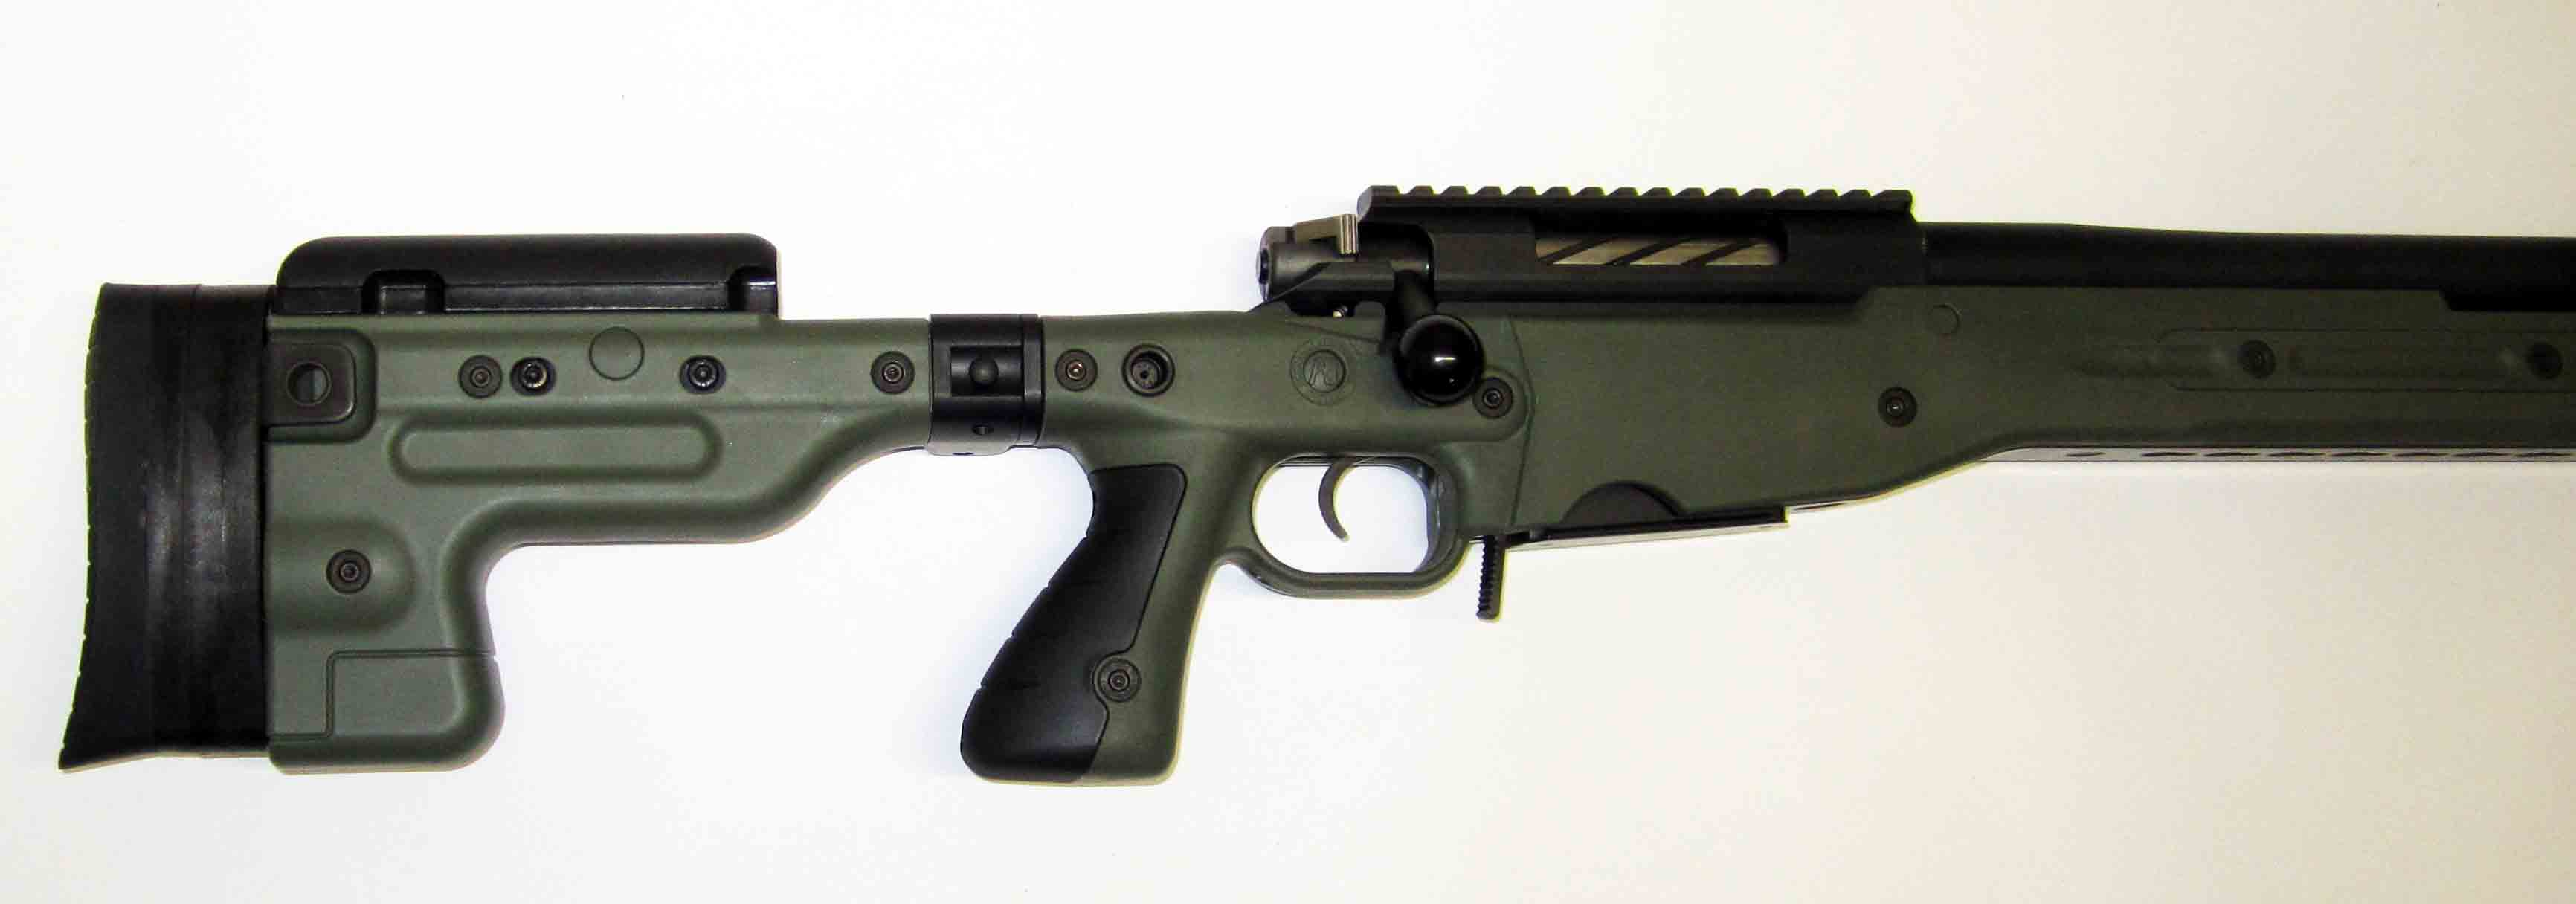 "Nimrod Rifle 26"". AT  folding stock . 308 . German custom action. Inc 5 rd mag. Green. Tac Muzzle Brake